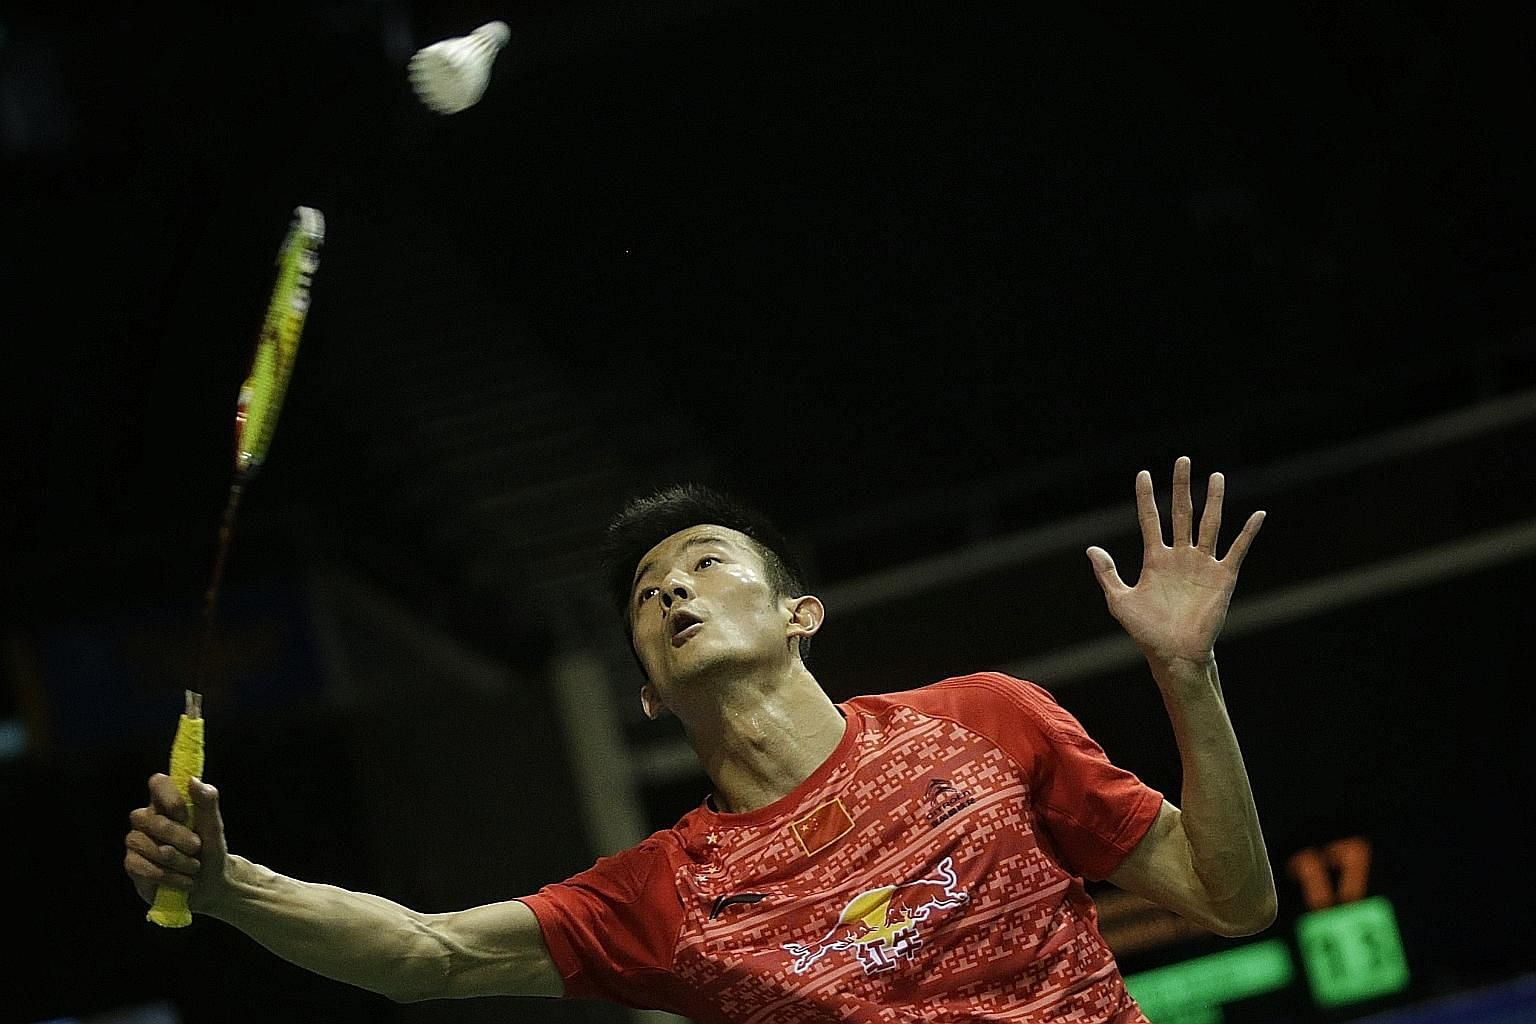 China's Chen Long (main picture) has yet to make the semi-finals in three attempts here after falling to Hong Kong's Angus Ng (left), while Akane Yamaguchi took out top-seeded Carolina Marin.